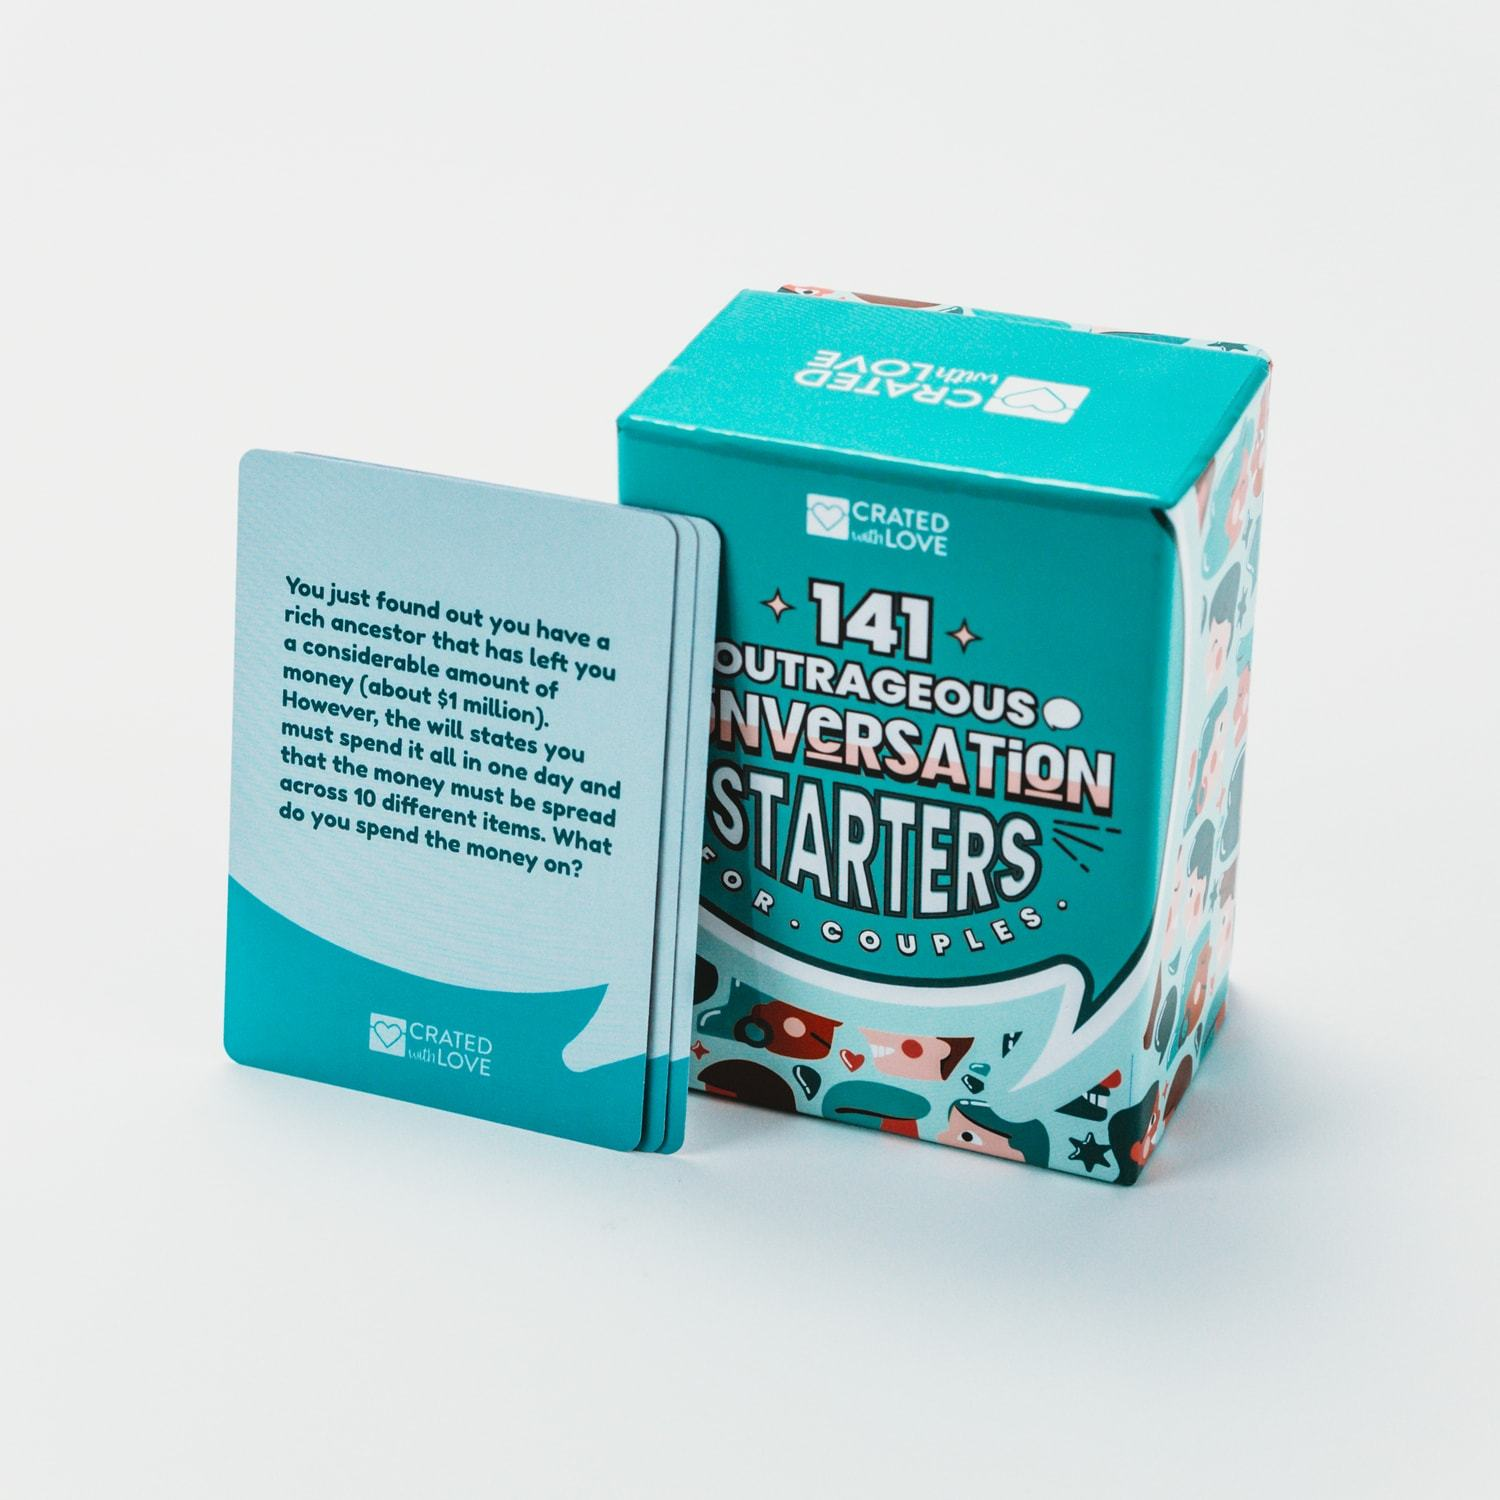 teal-colored deck of 141 outrageous conversation starters for couples